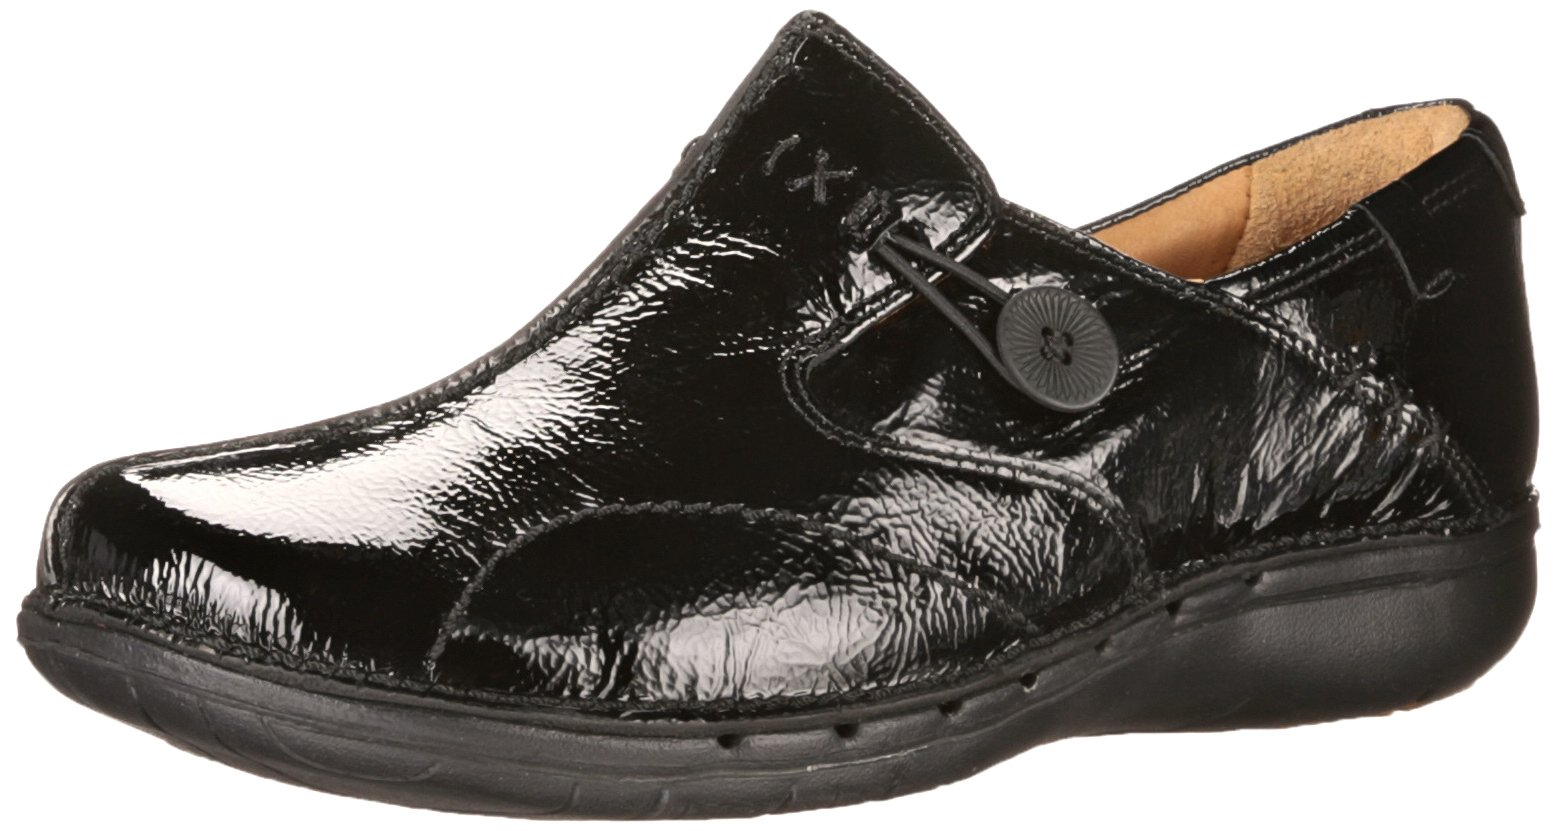 Clarks Women's Un Loop Flat, Black Patent Leather, 6.5 M US